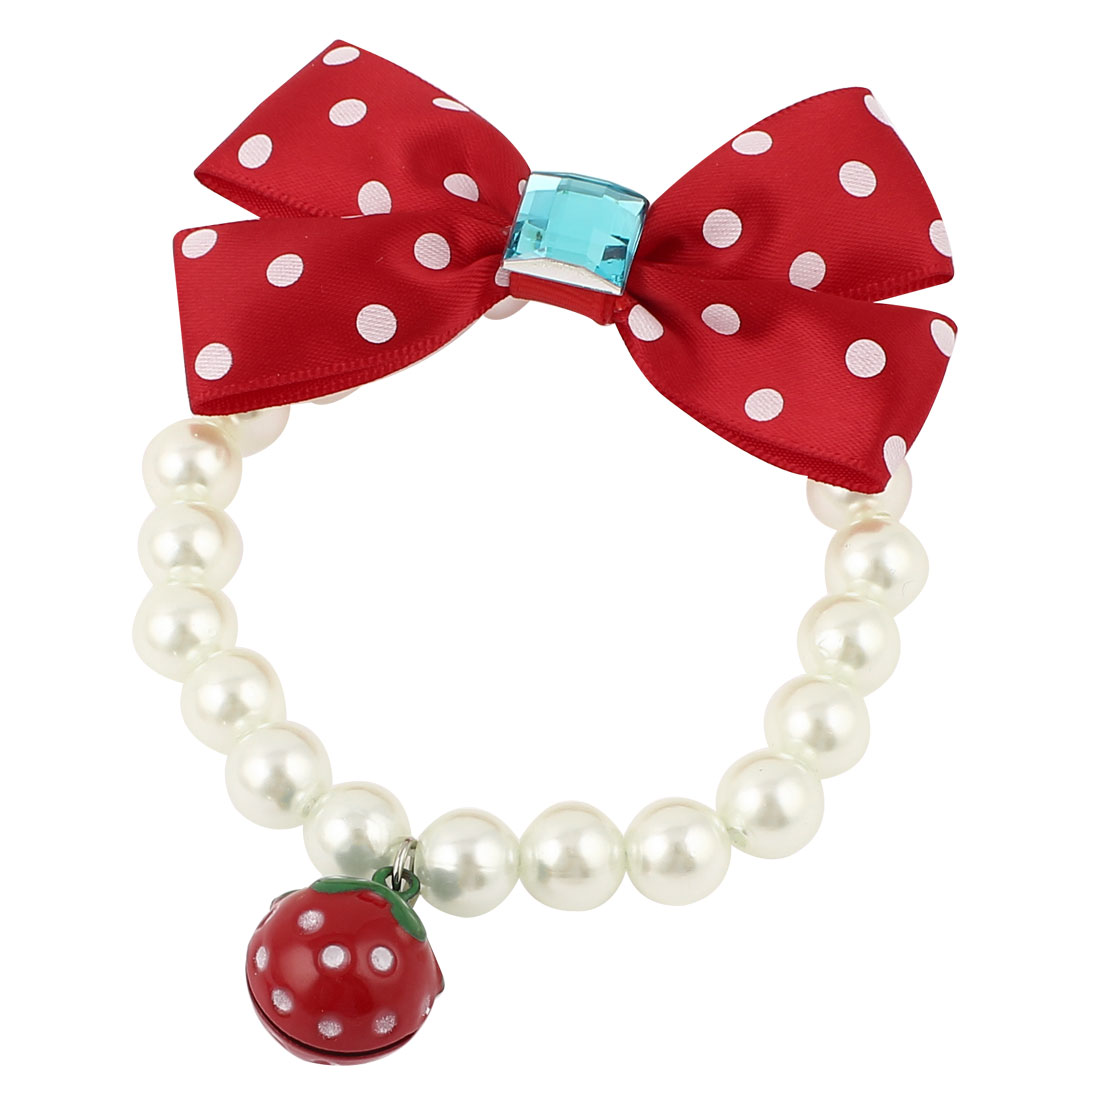 Metal Bell Pendant Bowknot Accent Pet Dog Plastic Beads Imitation Pearls Collar Necklace White Red XS